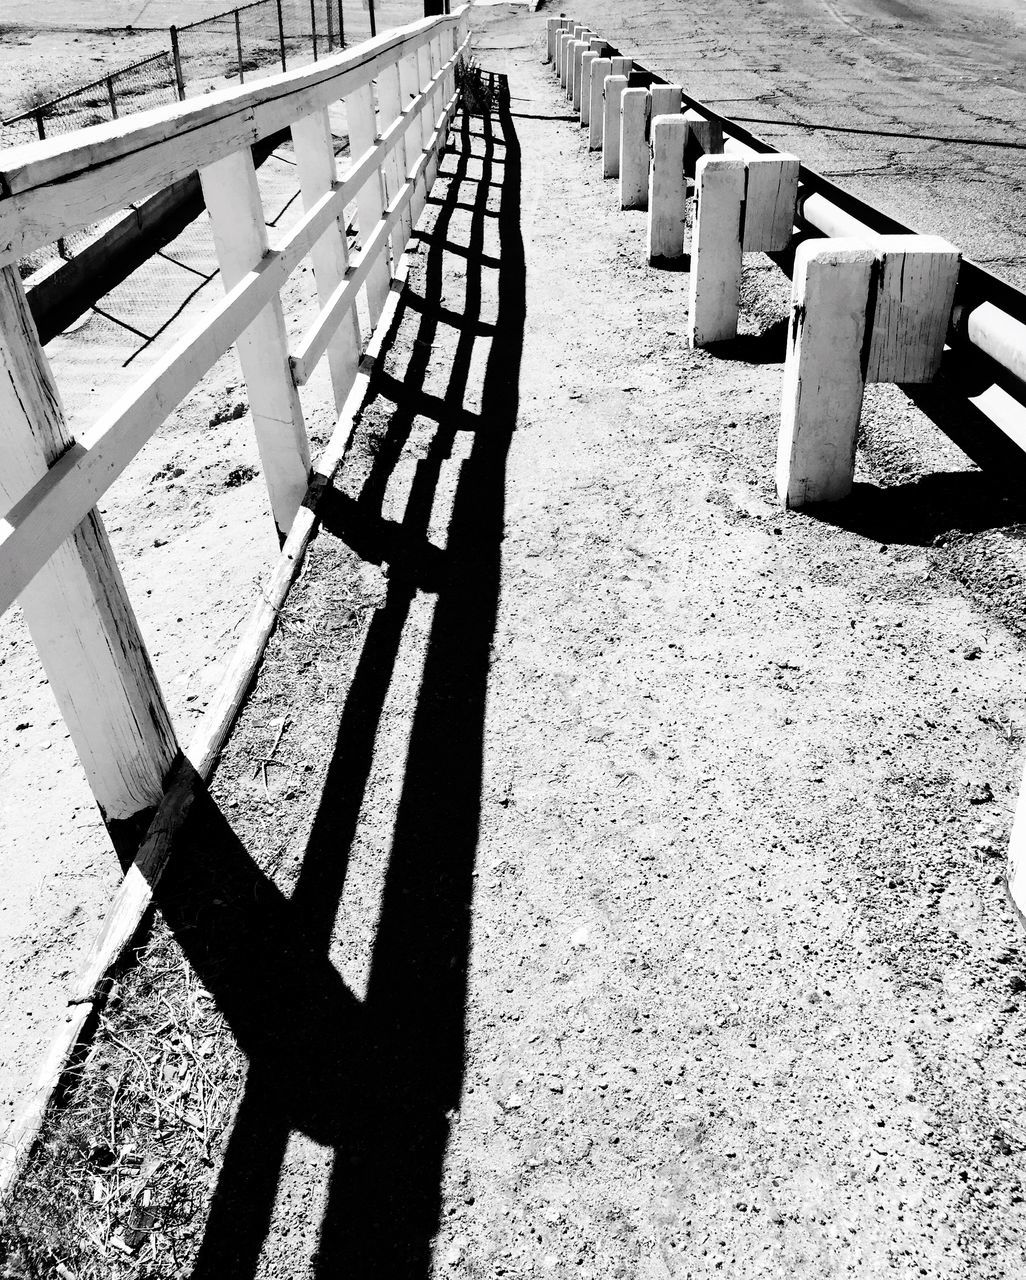 shadow, sunlight, high angle view, day, wood - material, no people, outdoors, sand, seat, nature